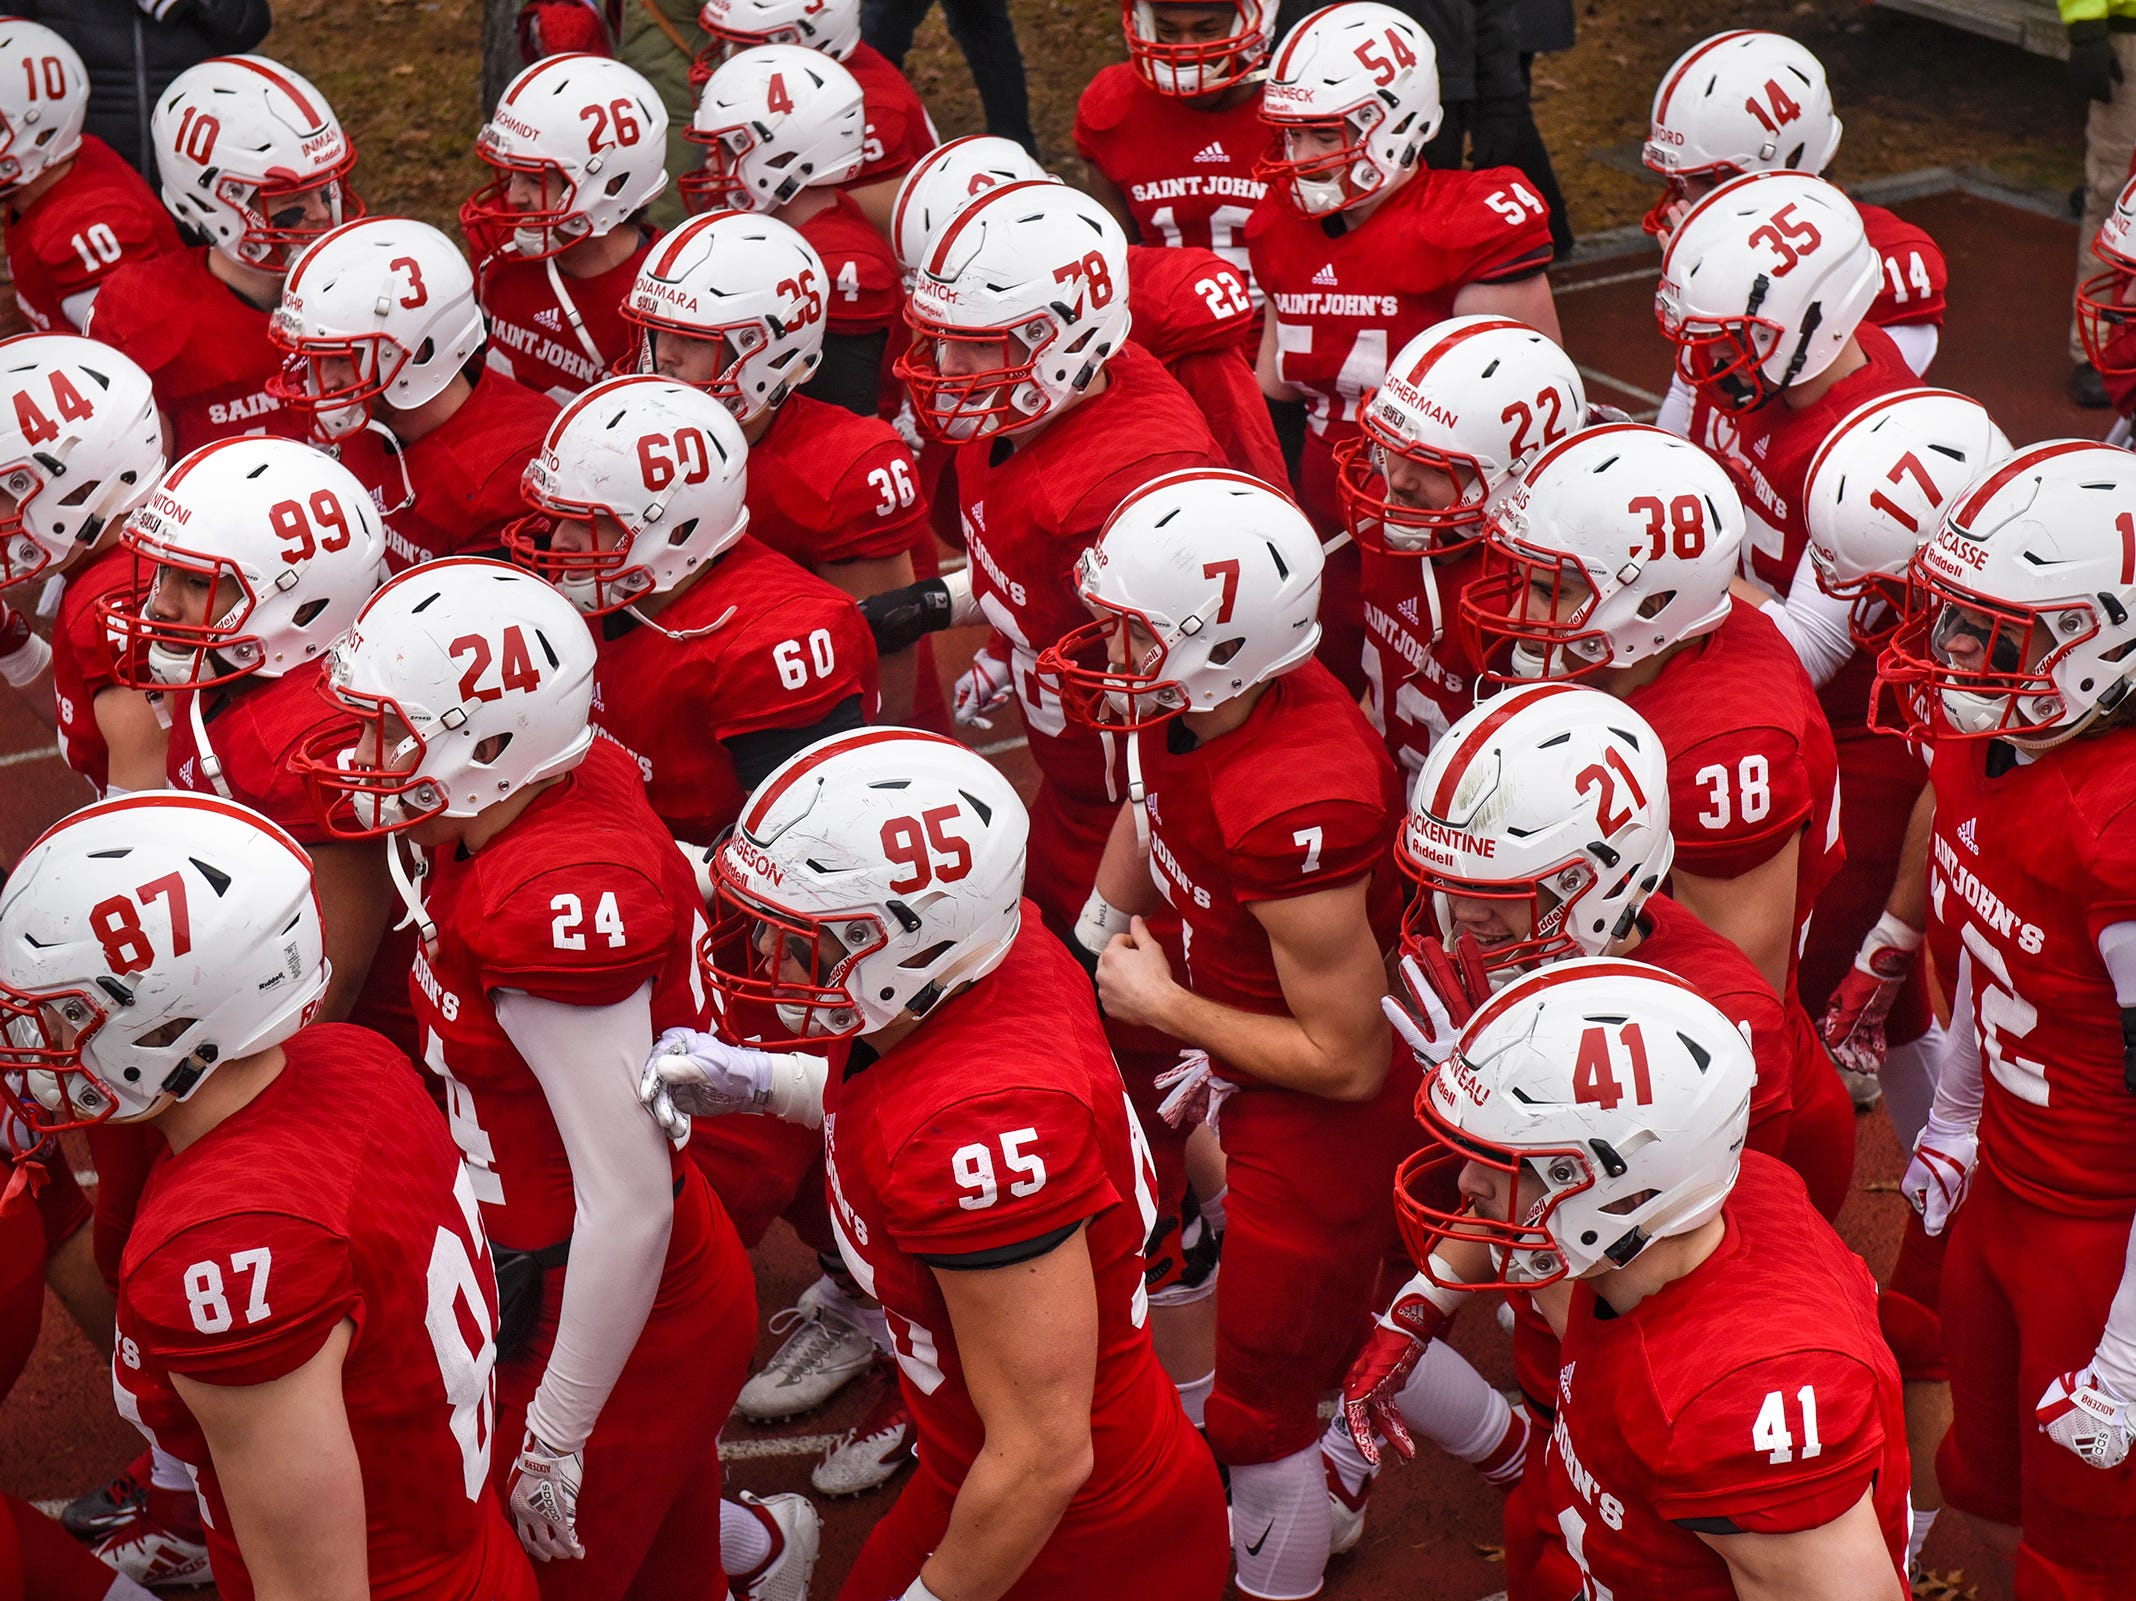 St. John's players prepare to take the field for the Saturday, Nov. 24, game against Whitworth at Clemens Stadium in Collegeville.